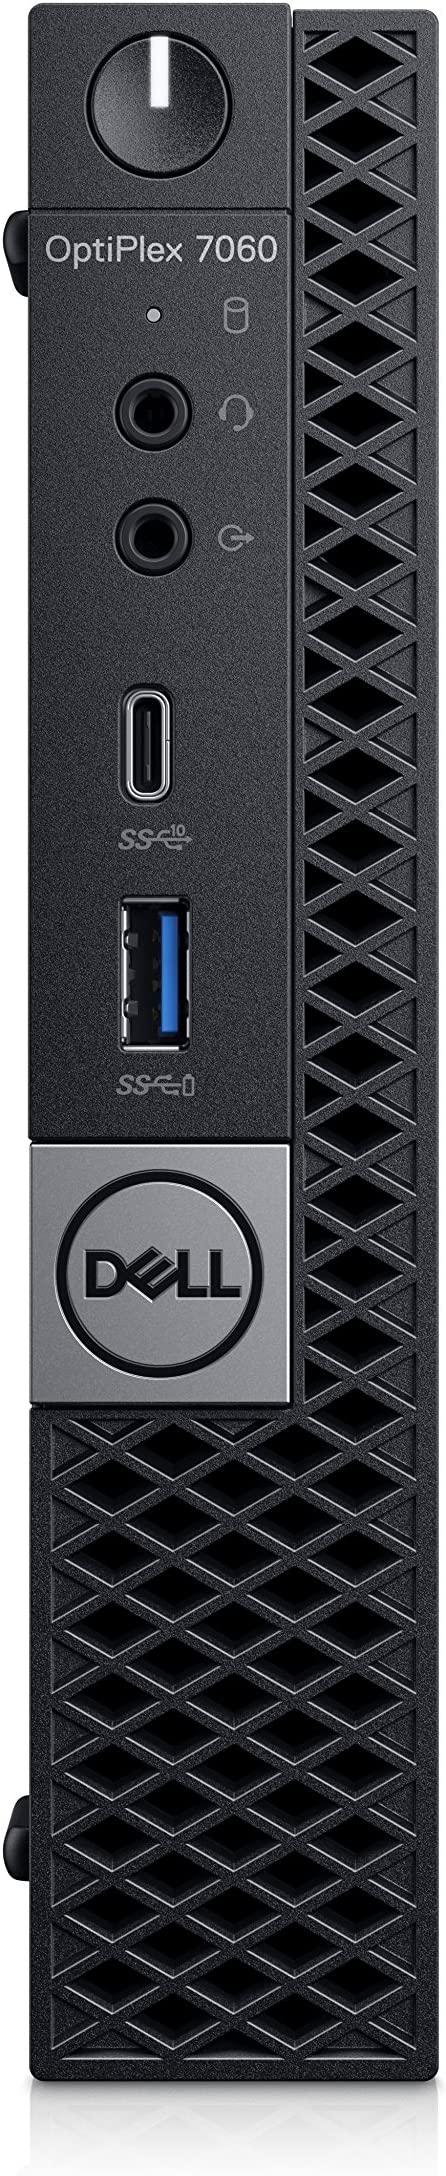 Dell OptiPlex 7060 2.1 GHz 8th Gen Intel® Core i5 i5-8500T Black USFF PC OptiPlex 7060, 2.1 GHz, 8th Gen Intel® Core i5, i5-8500T, 8 GB, 128 GB, Windows 10 Pro